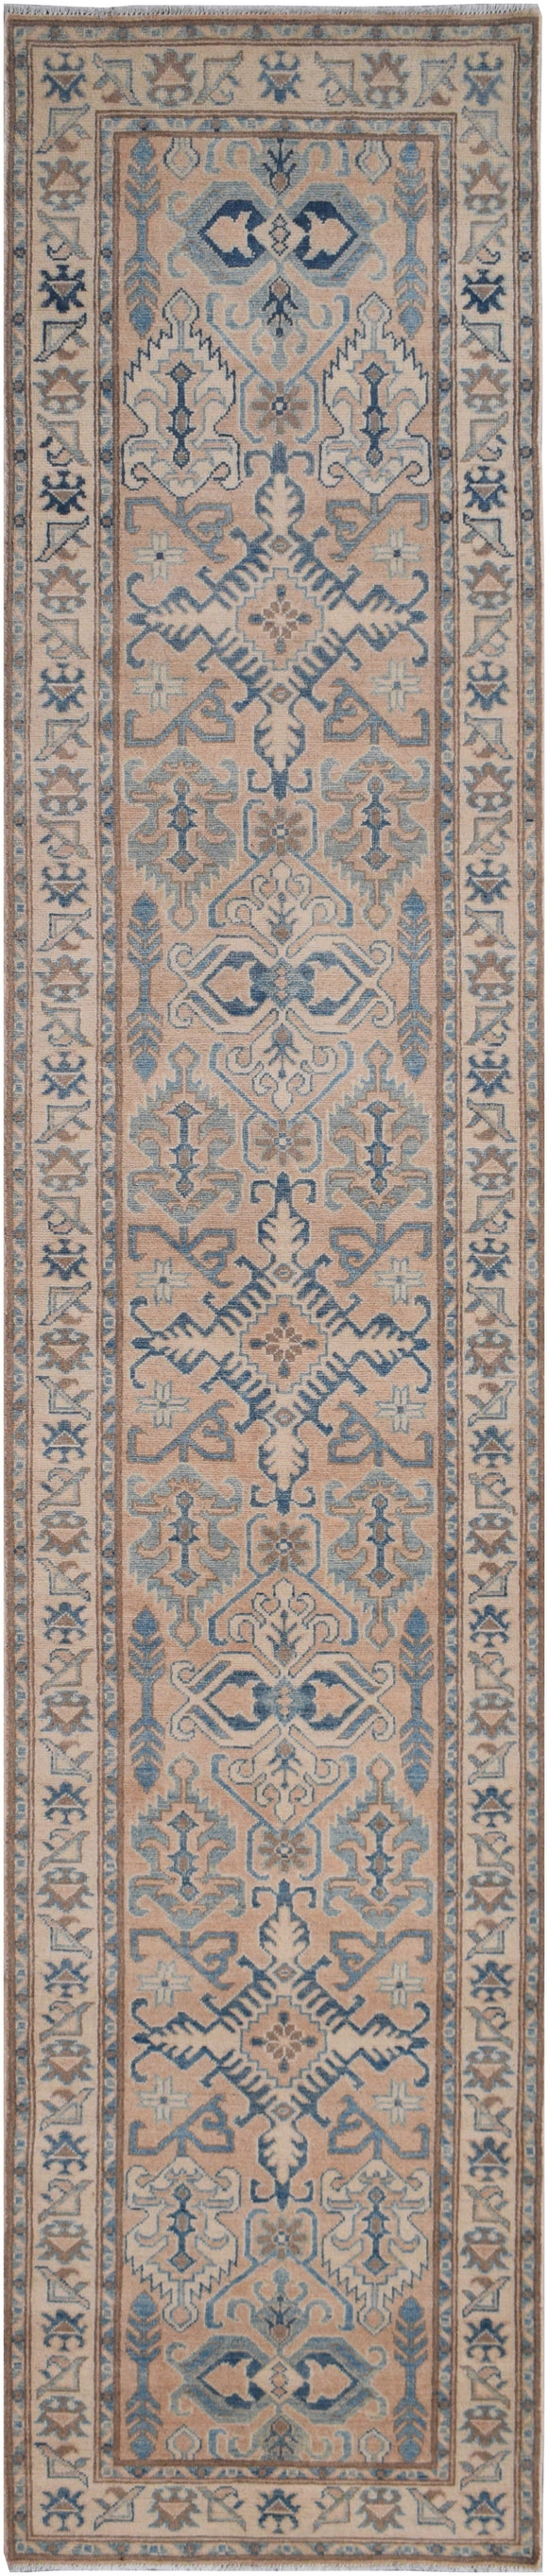 Handmade Sultan Collection Hallway Runner | 408 x 83 cm